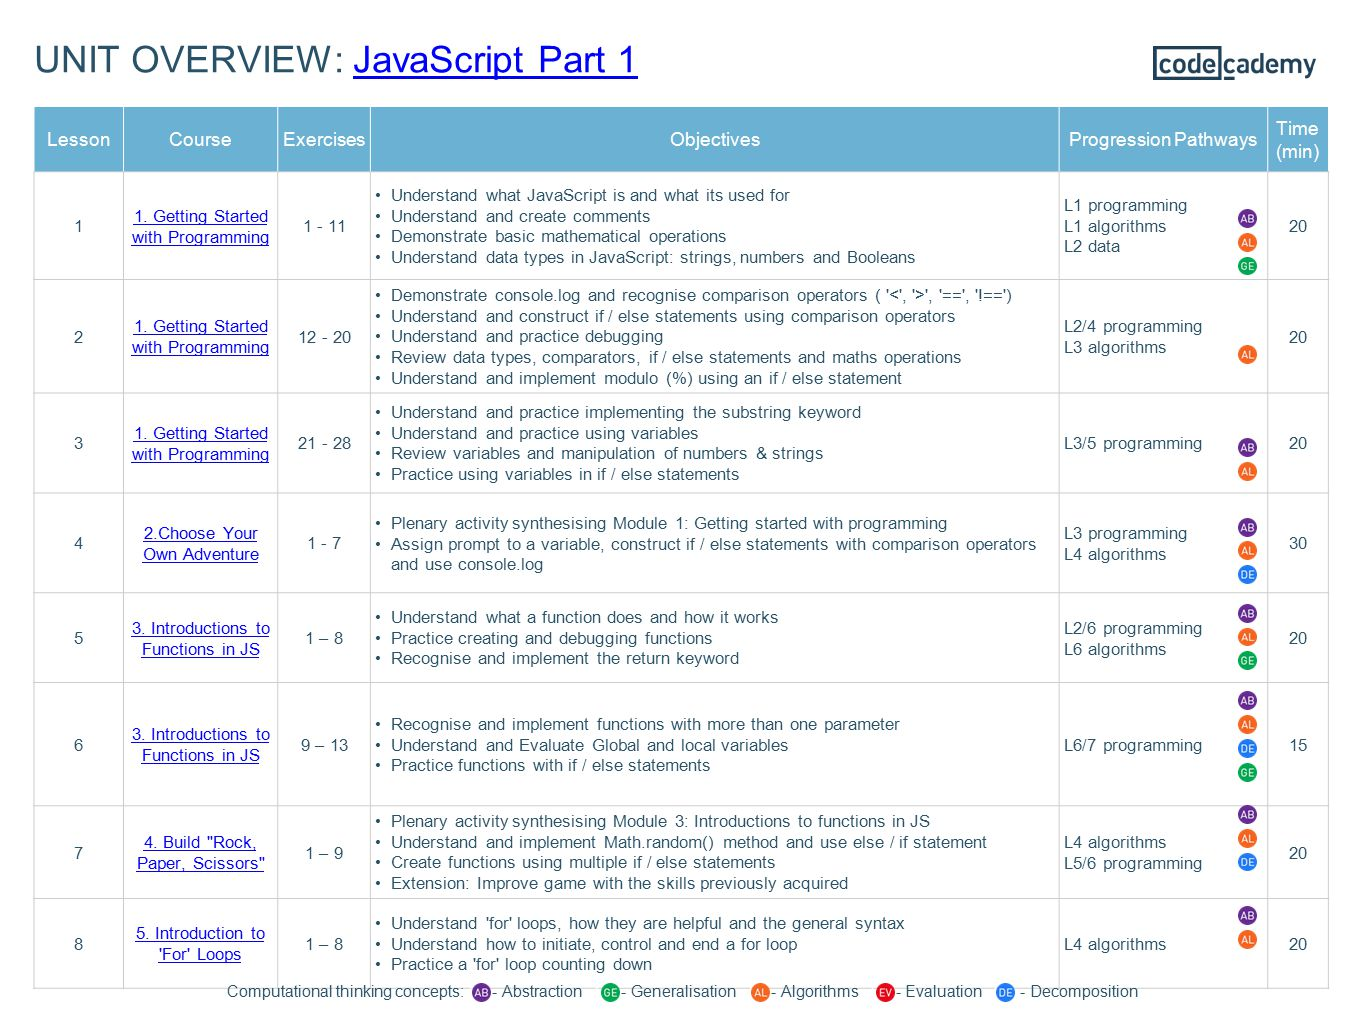 UNIT OVERVIEW: JavaScript Part 1